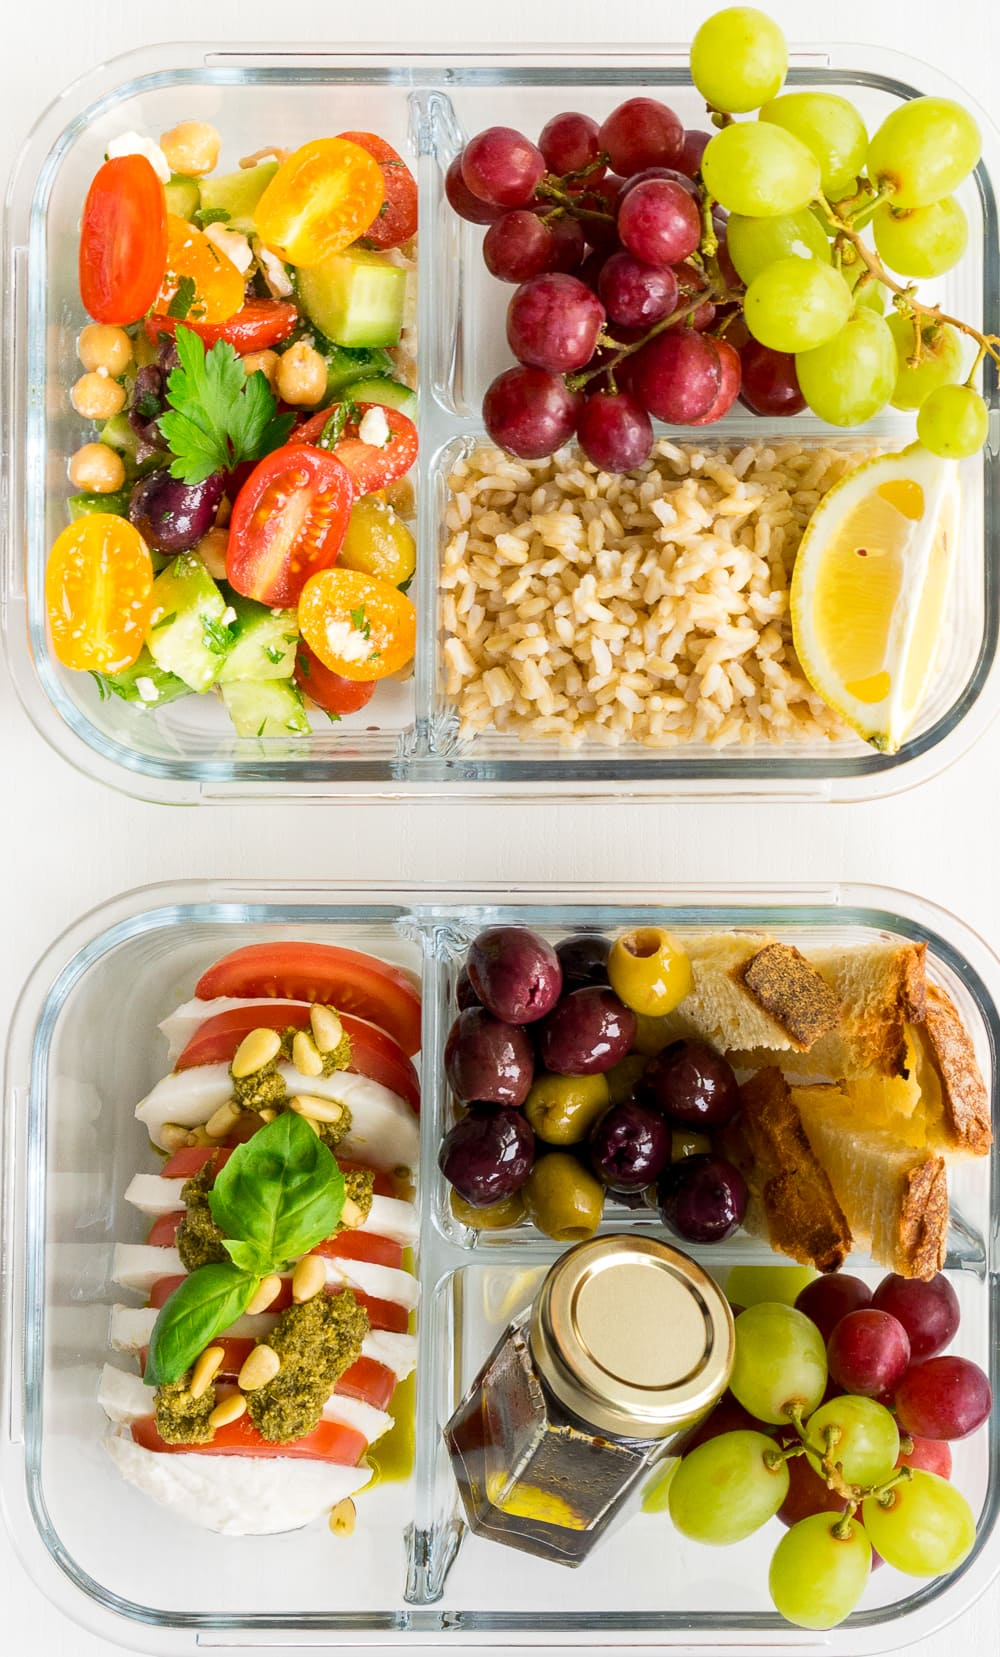 2 lunch box ideas: Who says bringing lunch from home needs to be boring? These 2 awesome lunch box ideas for adults are perfect for work and are ready in less than 30 minutes!